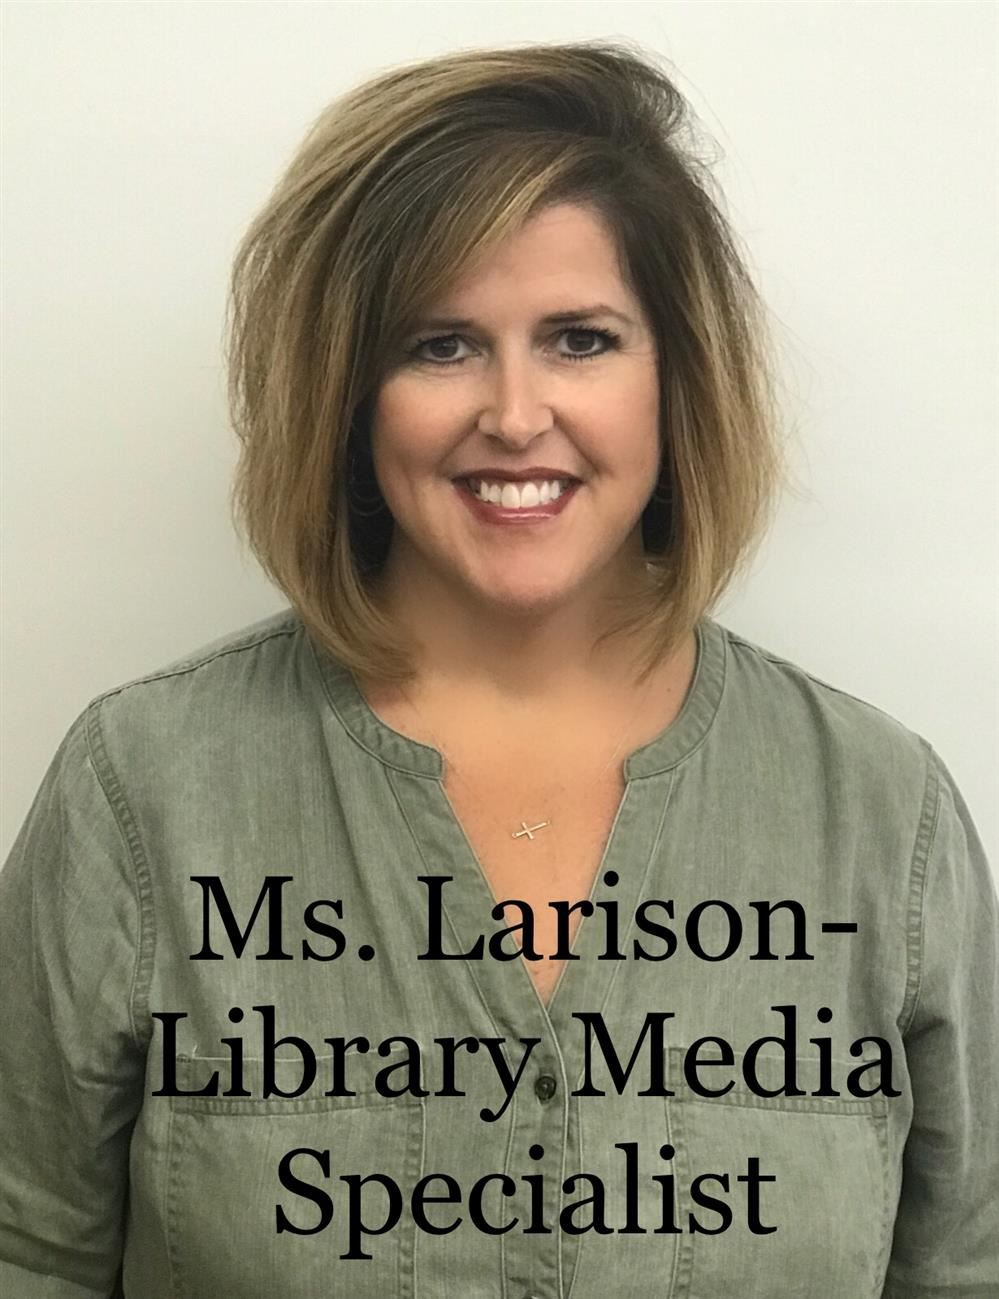 Mrs. Larison, Library Media Specialist